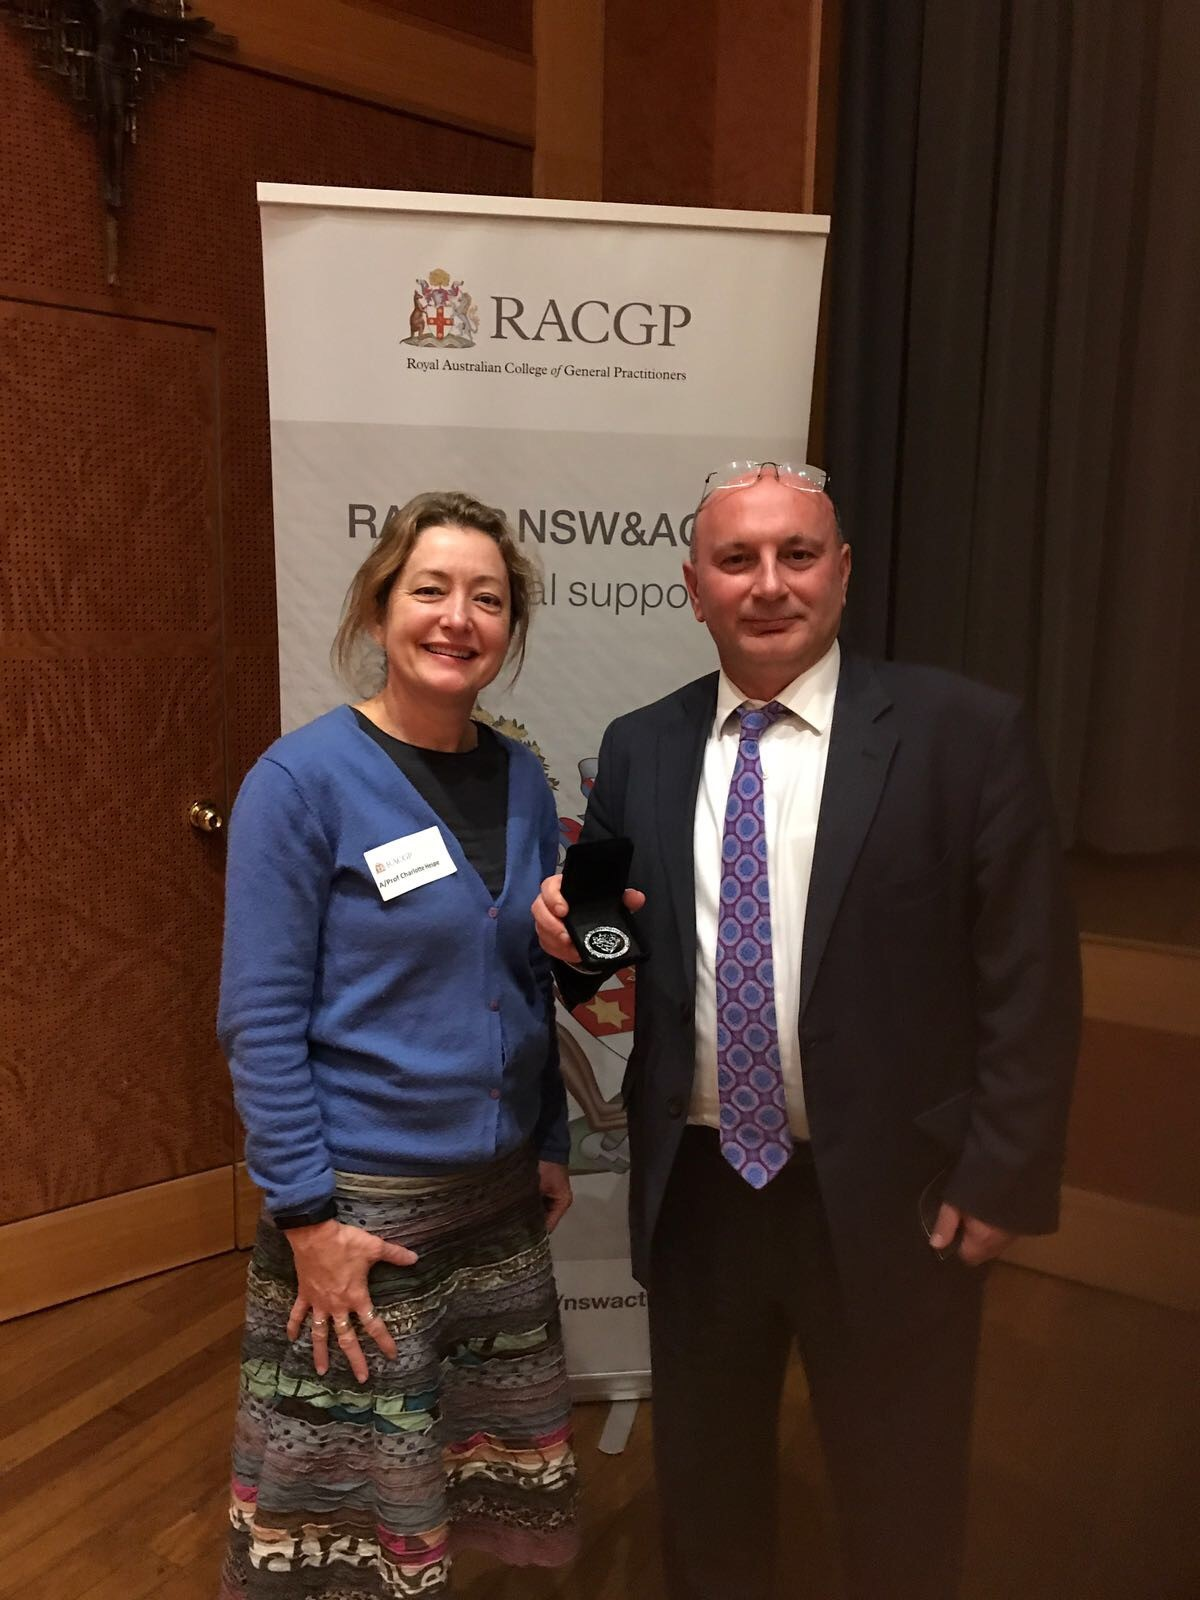 Dr Jammal- RACGP NSW/ACT GP of the Year 2017 - Congratulations to Dr Walid Jammal who was named the RACGP GP of the Year for the NSW/ACT region for 2017.